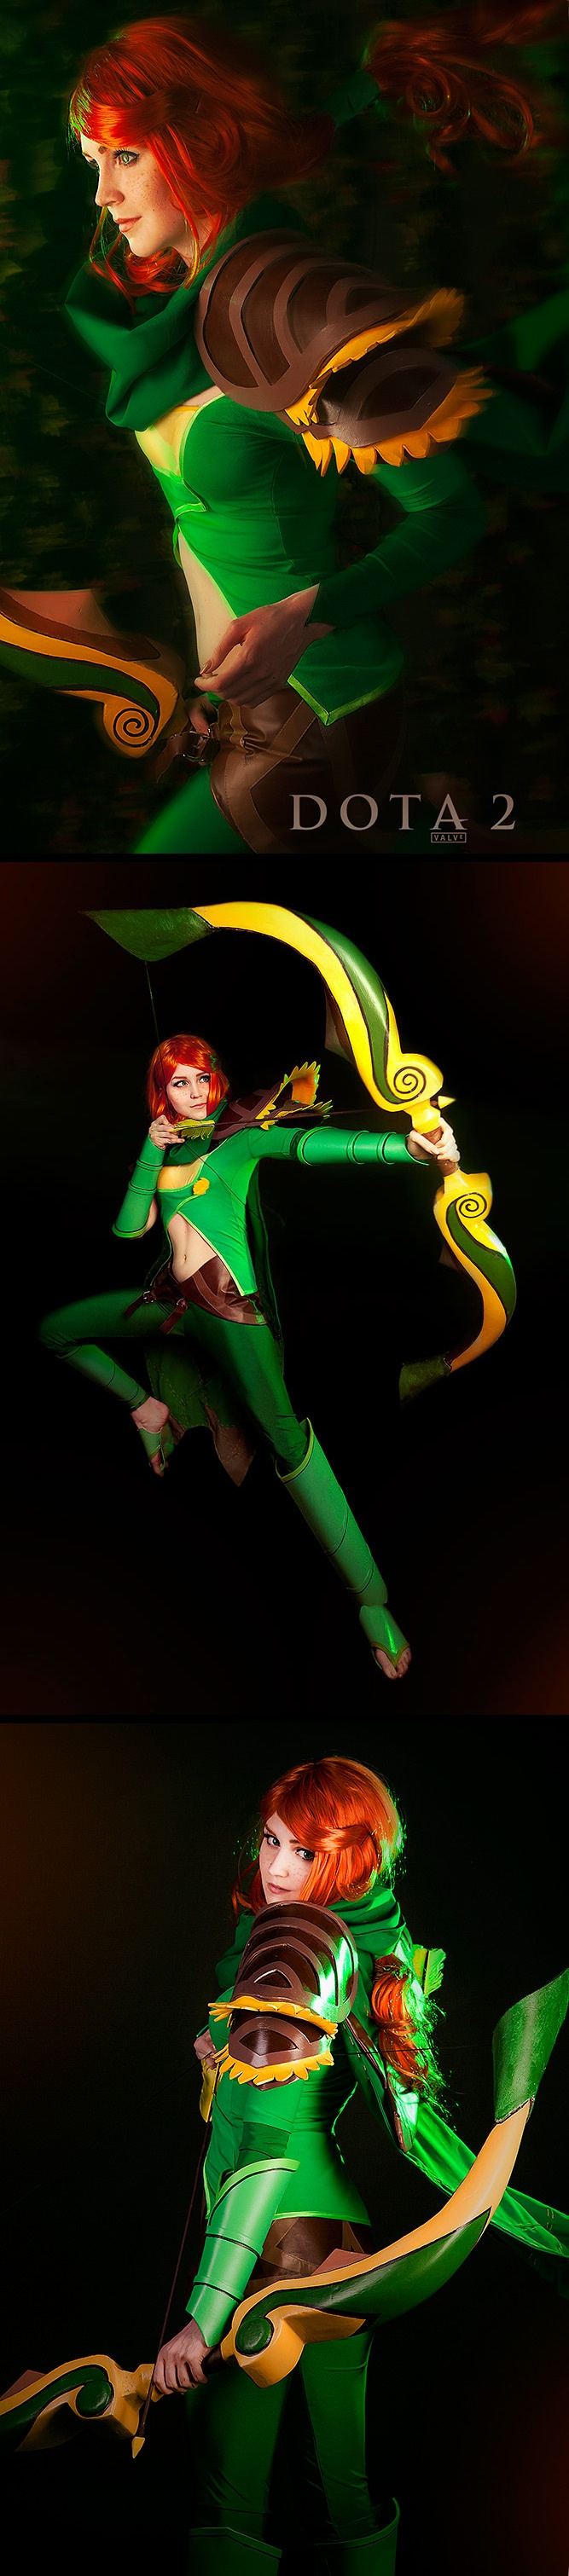 Windrunner from DOTA 2 #cosplay